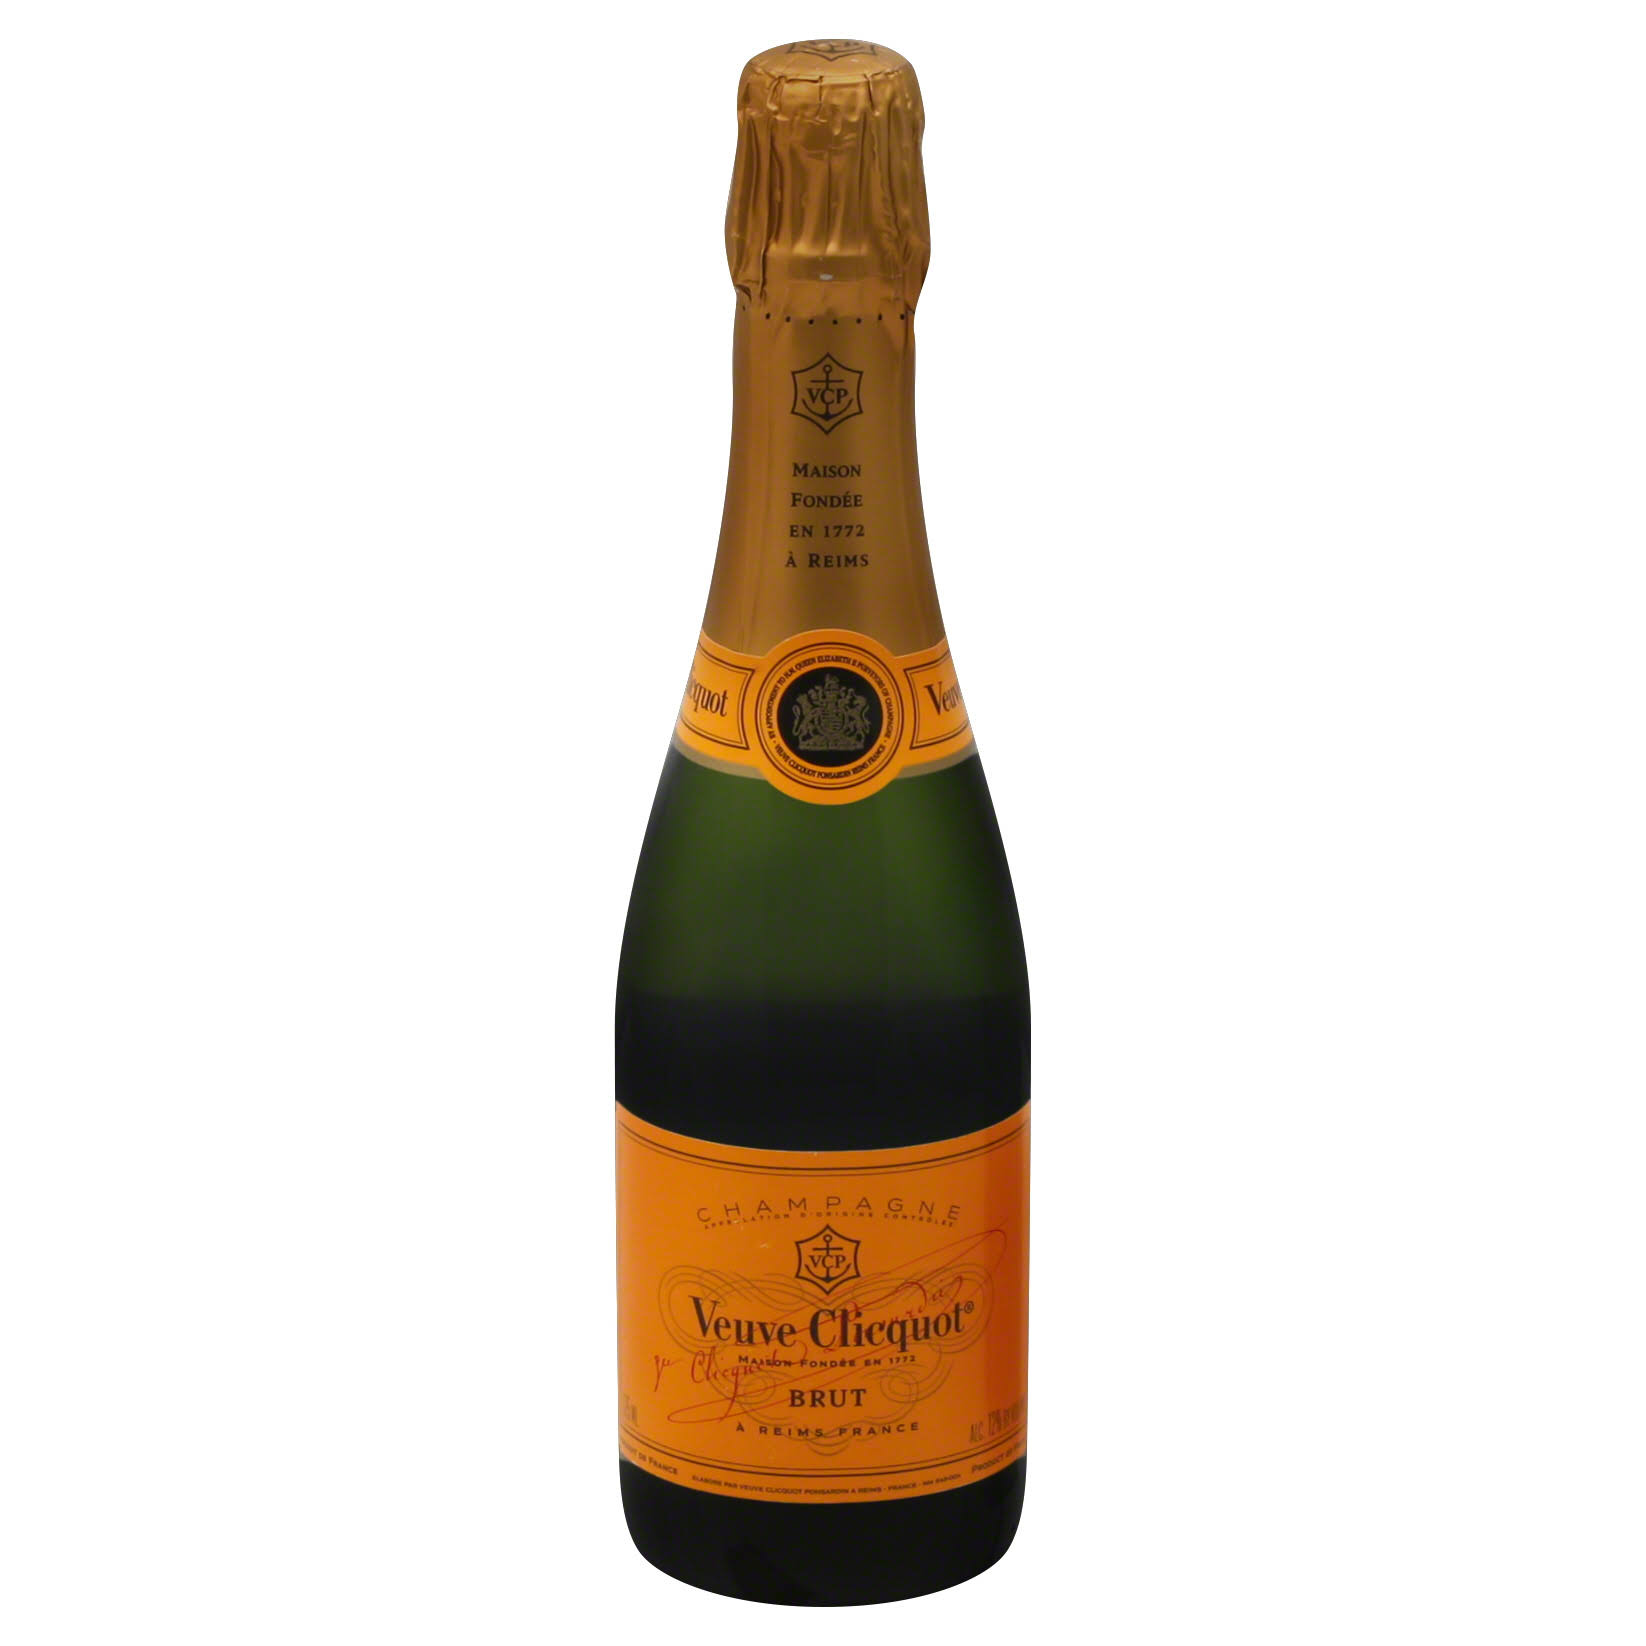 Veuve Clicquot Ponsardin Brut Yellow Label Champagne - 375ml